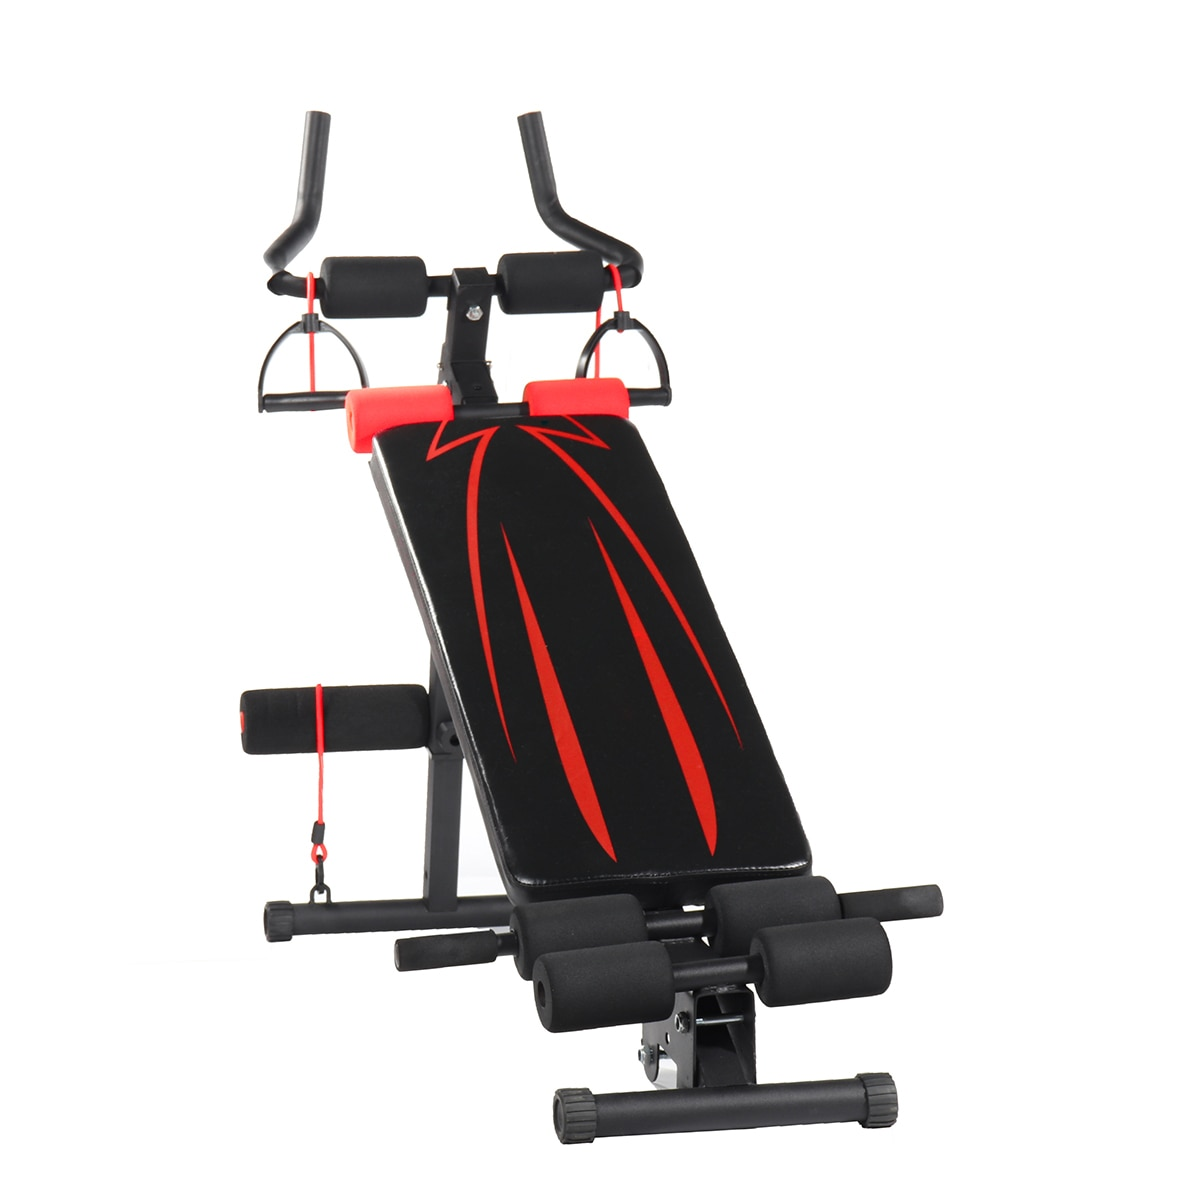 GRT Fitness 23781-jhof0r 4in1 Foldable Dumbbell Bench 7 Gear Backrest Sit Up AB Abdominal Multifunctional Fitness Bench Weight Training Equipment Rollers